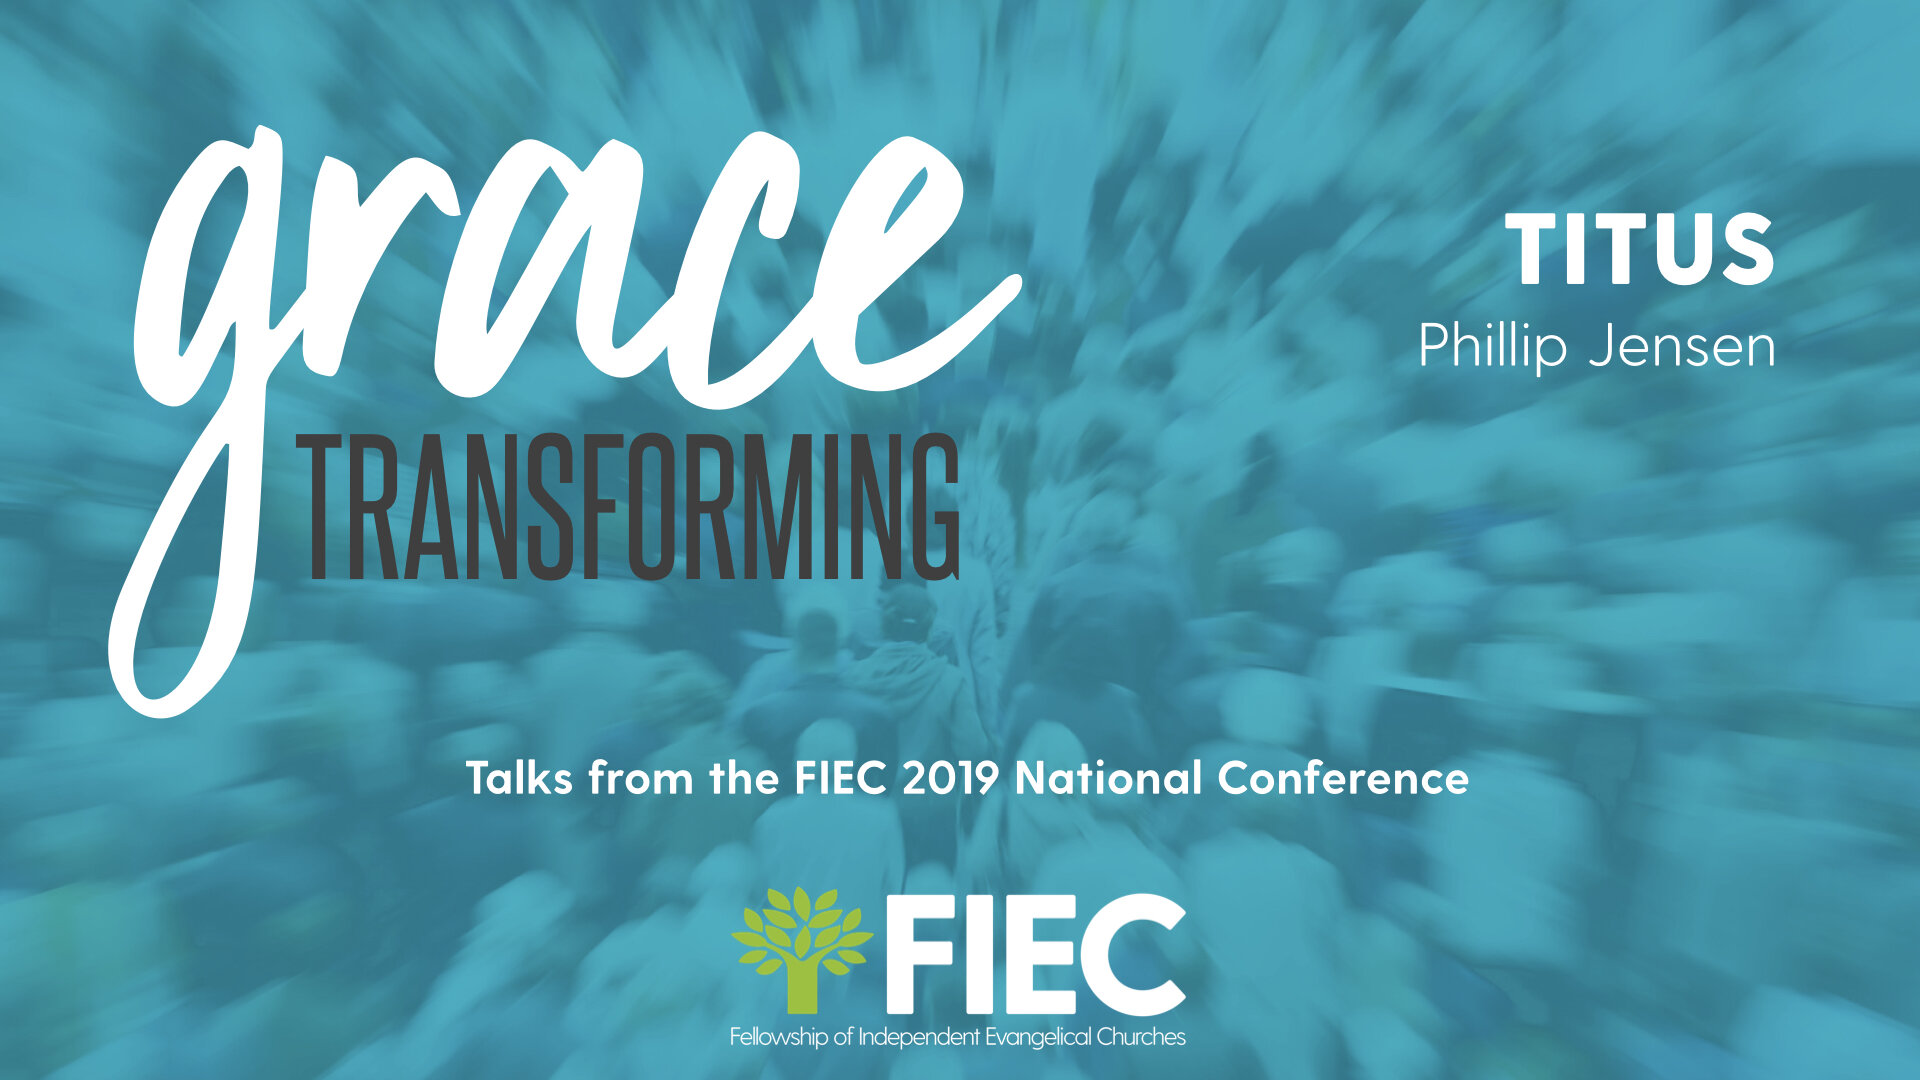 FIEC 2019 Conference Video intro.001.jpeg